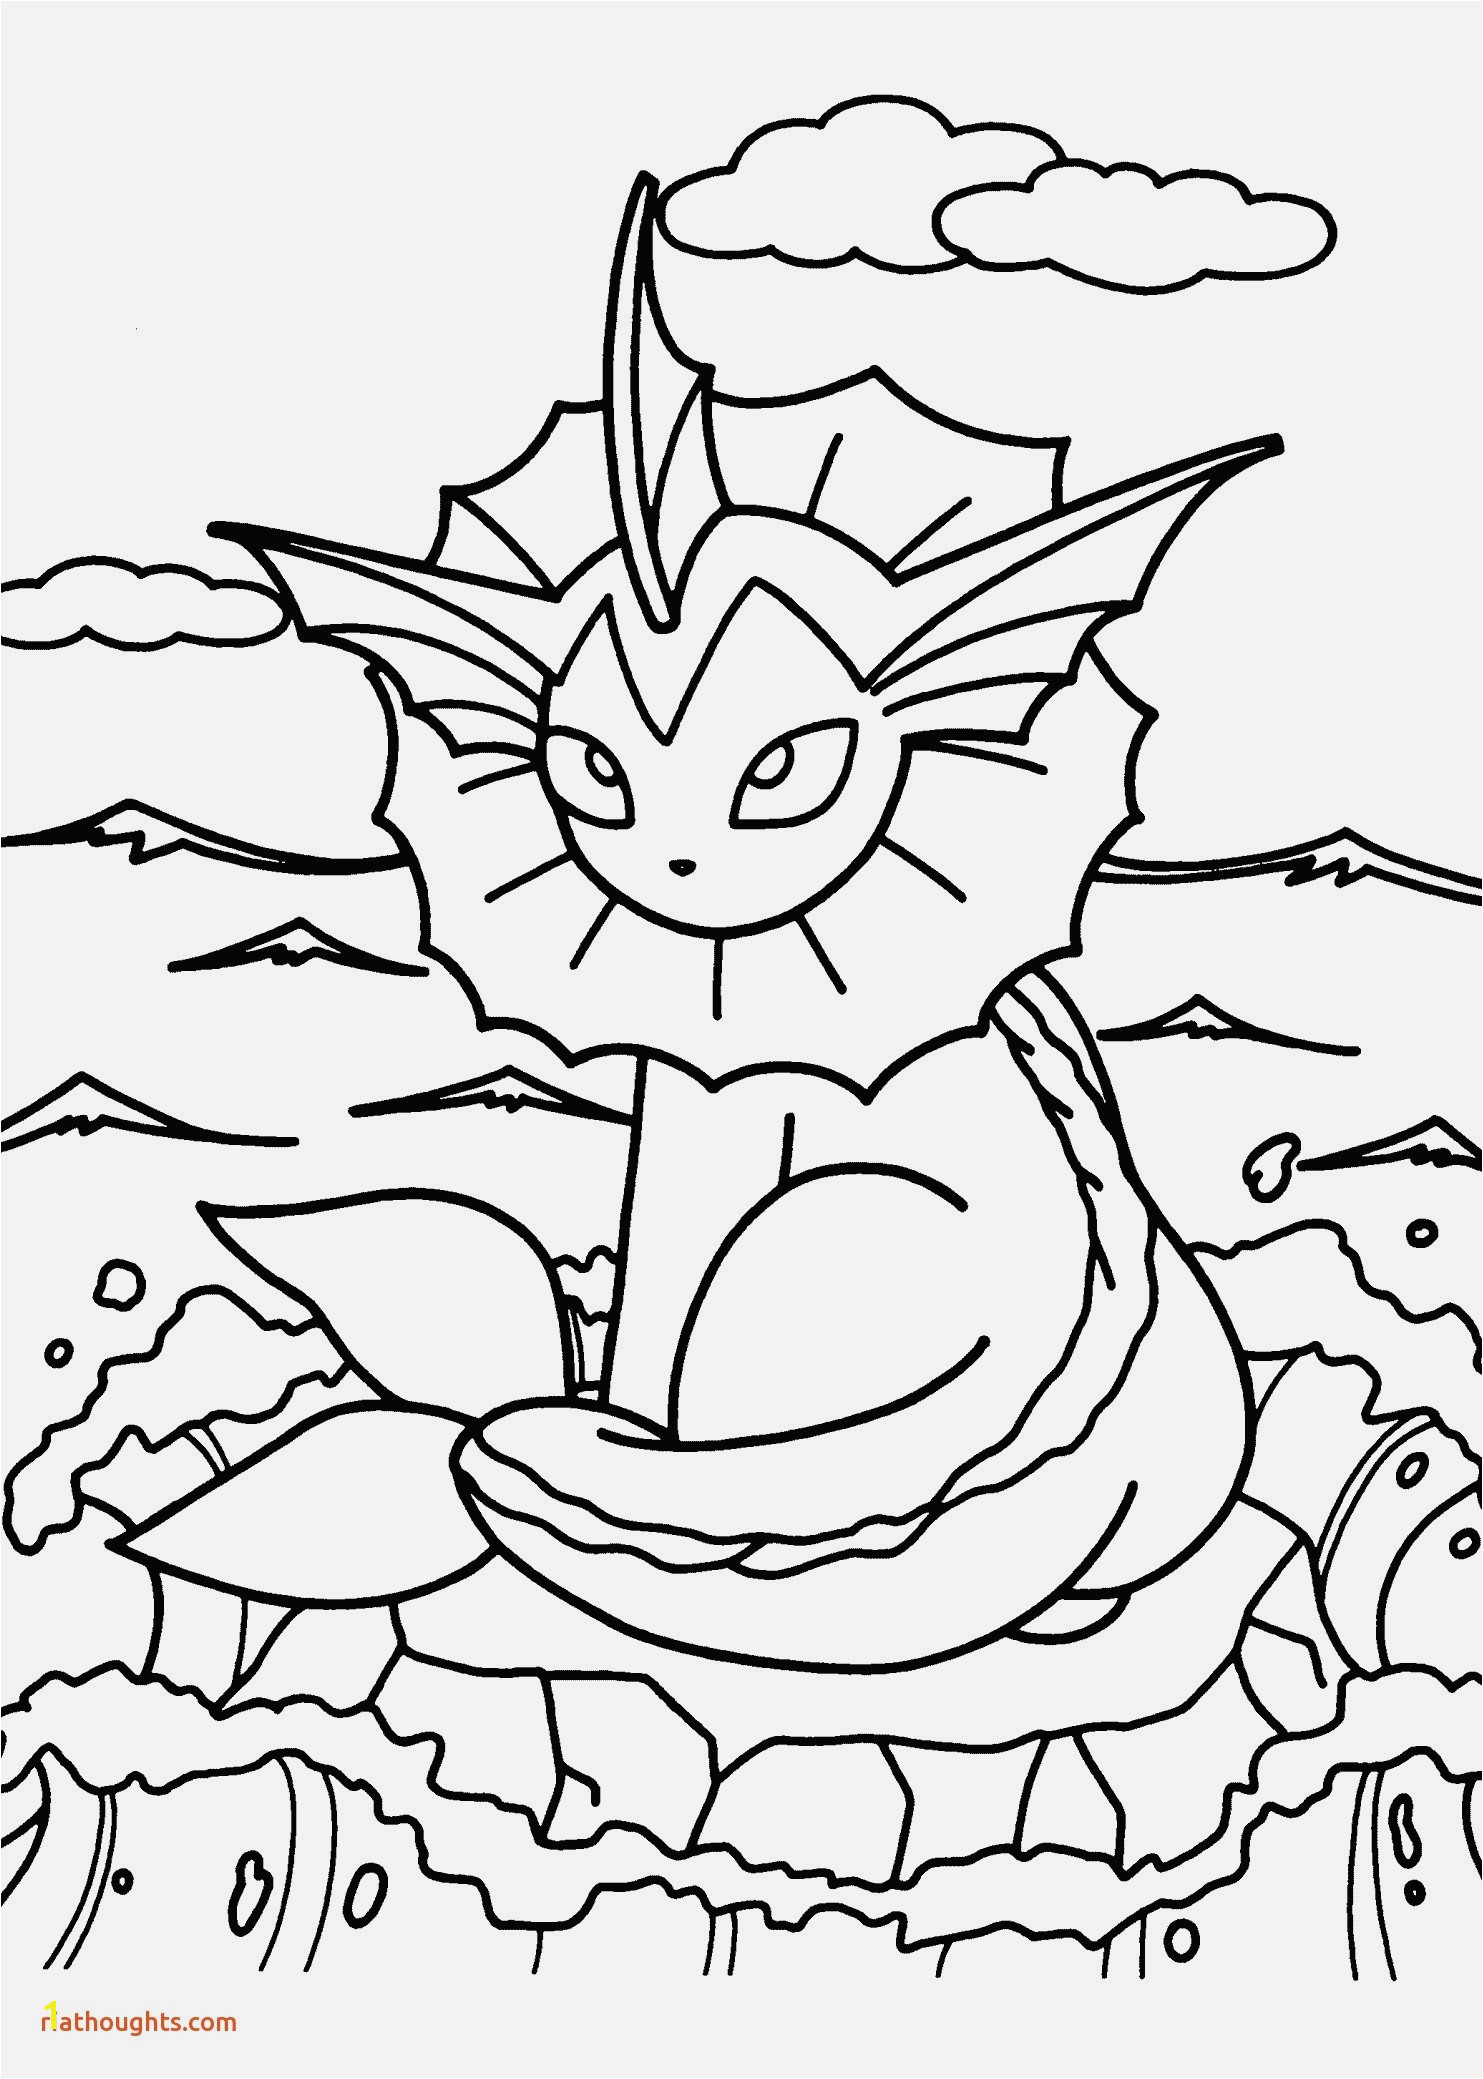 Medusa Coloring Pages Coloring & Activity Panda Coloring Pages Lovely Printable Coloring Page Pin by Jade